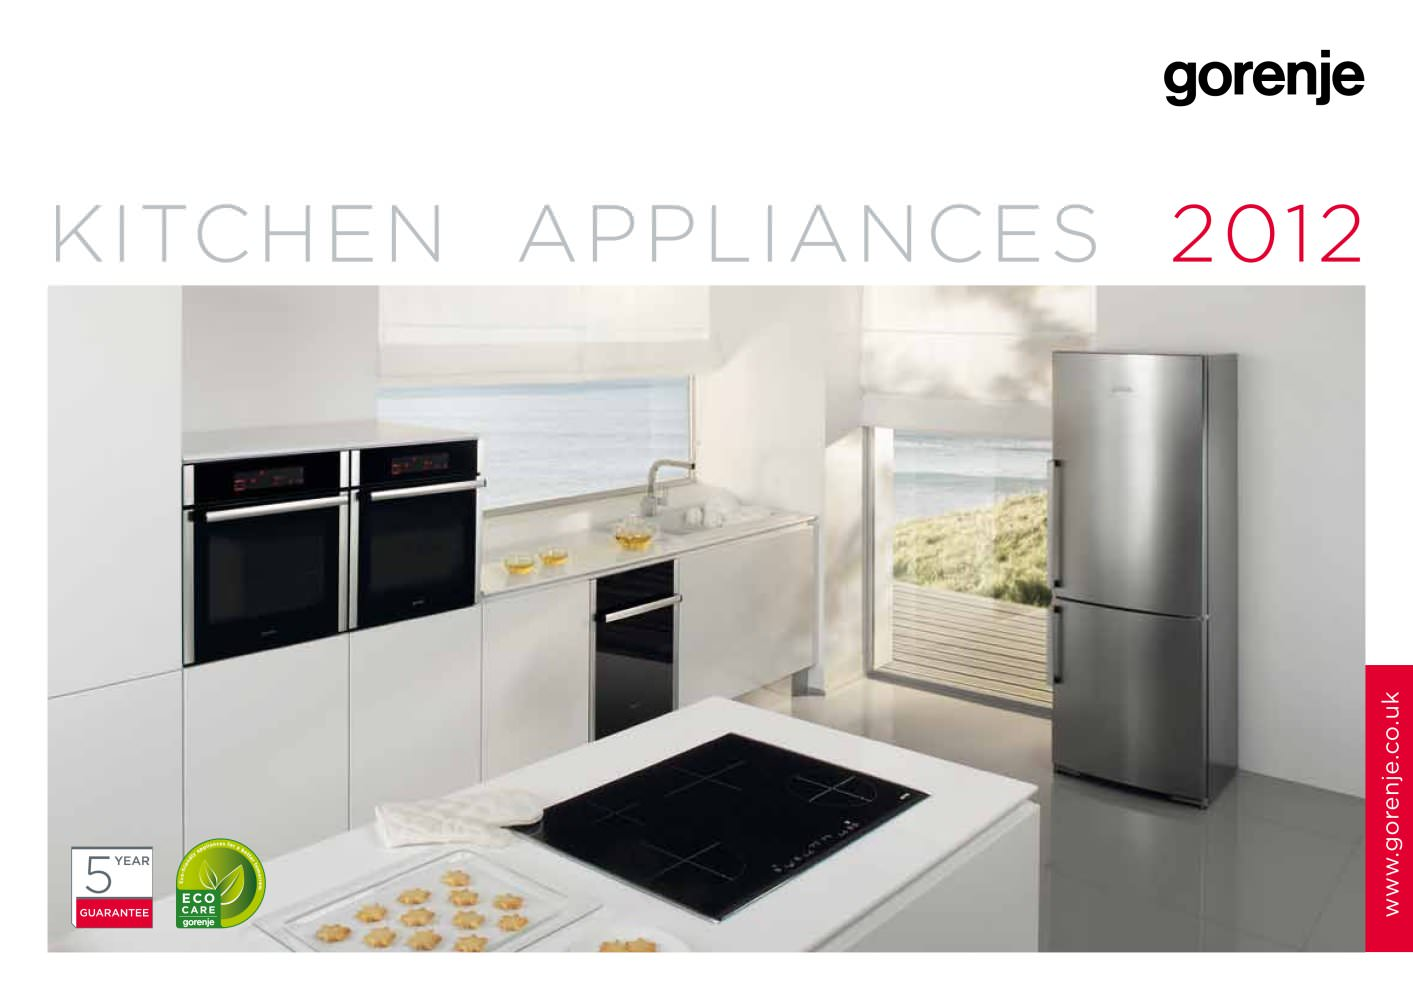 superior Kitchen Appliances Catalogue #6: catalogue Kitchen appliances 2012 - 1 / 132 Pages